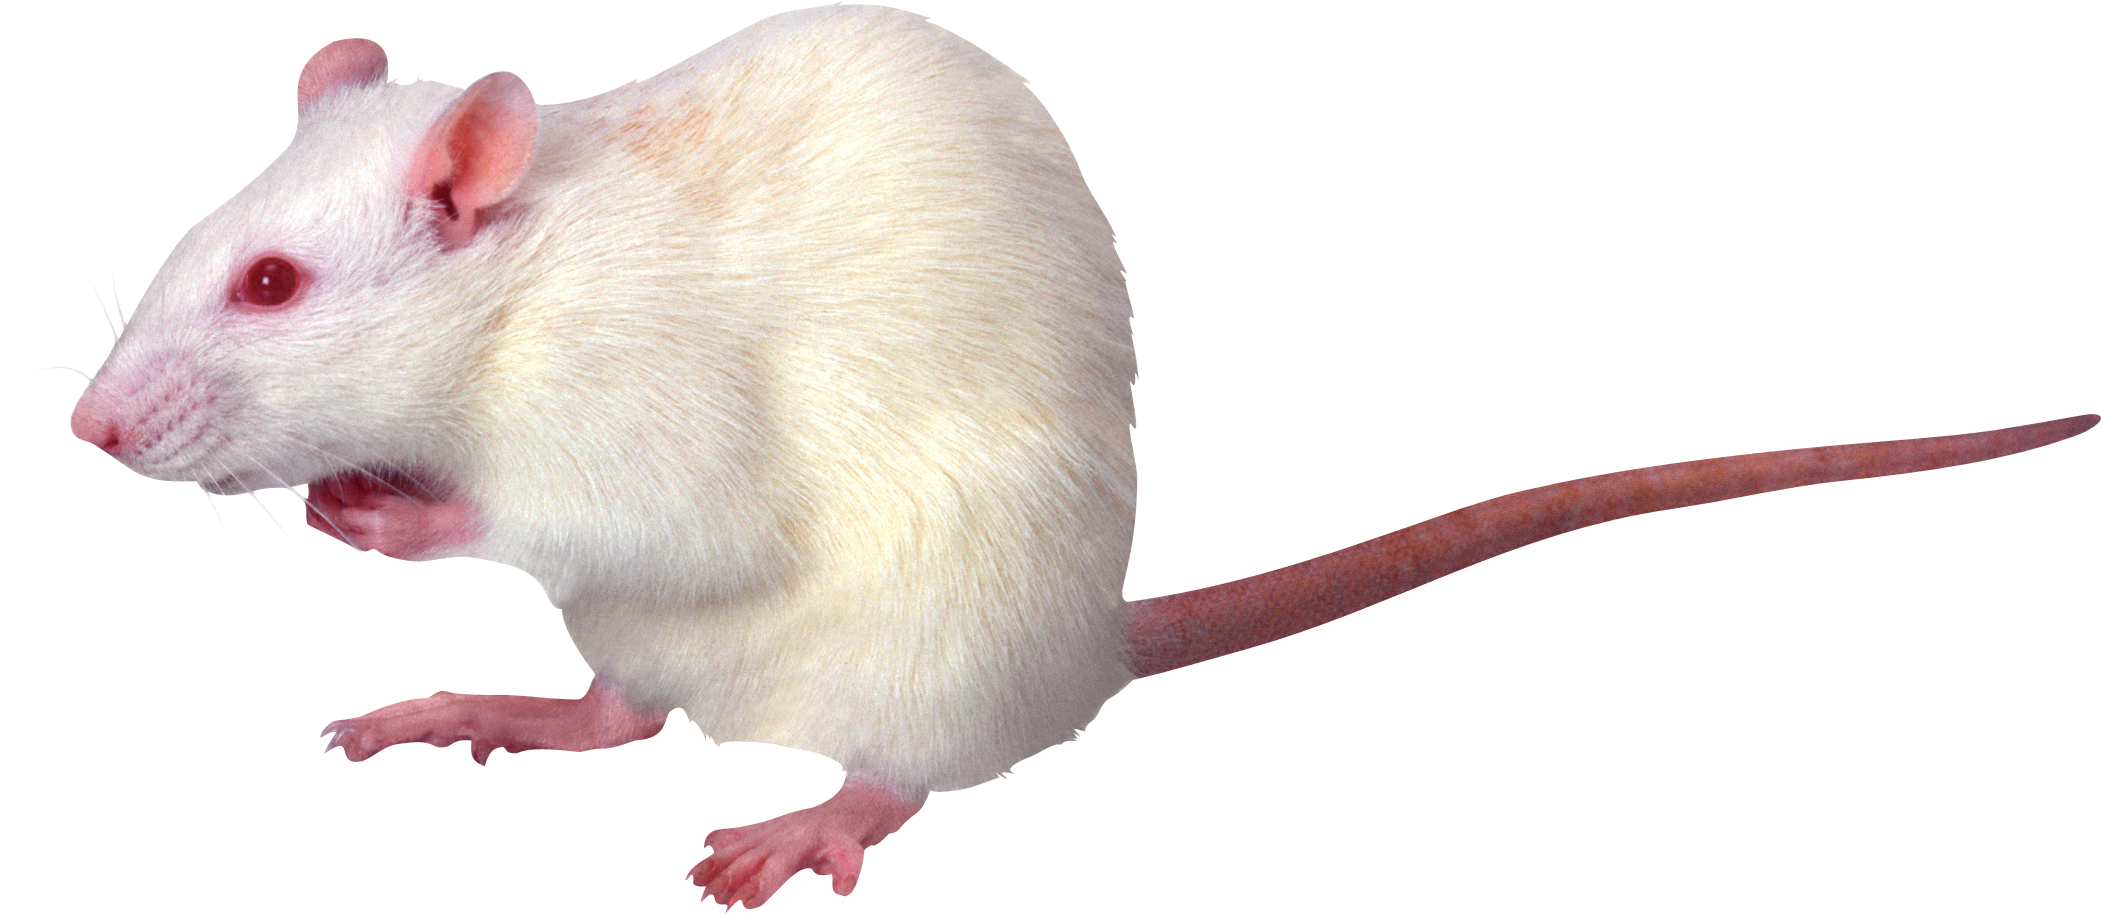 White Rat Png Image Albino Animals Rare Albino Animals Albino Rats eats a variety of foods. white rat png image albino animals